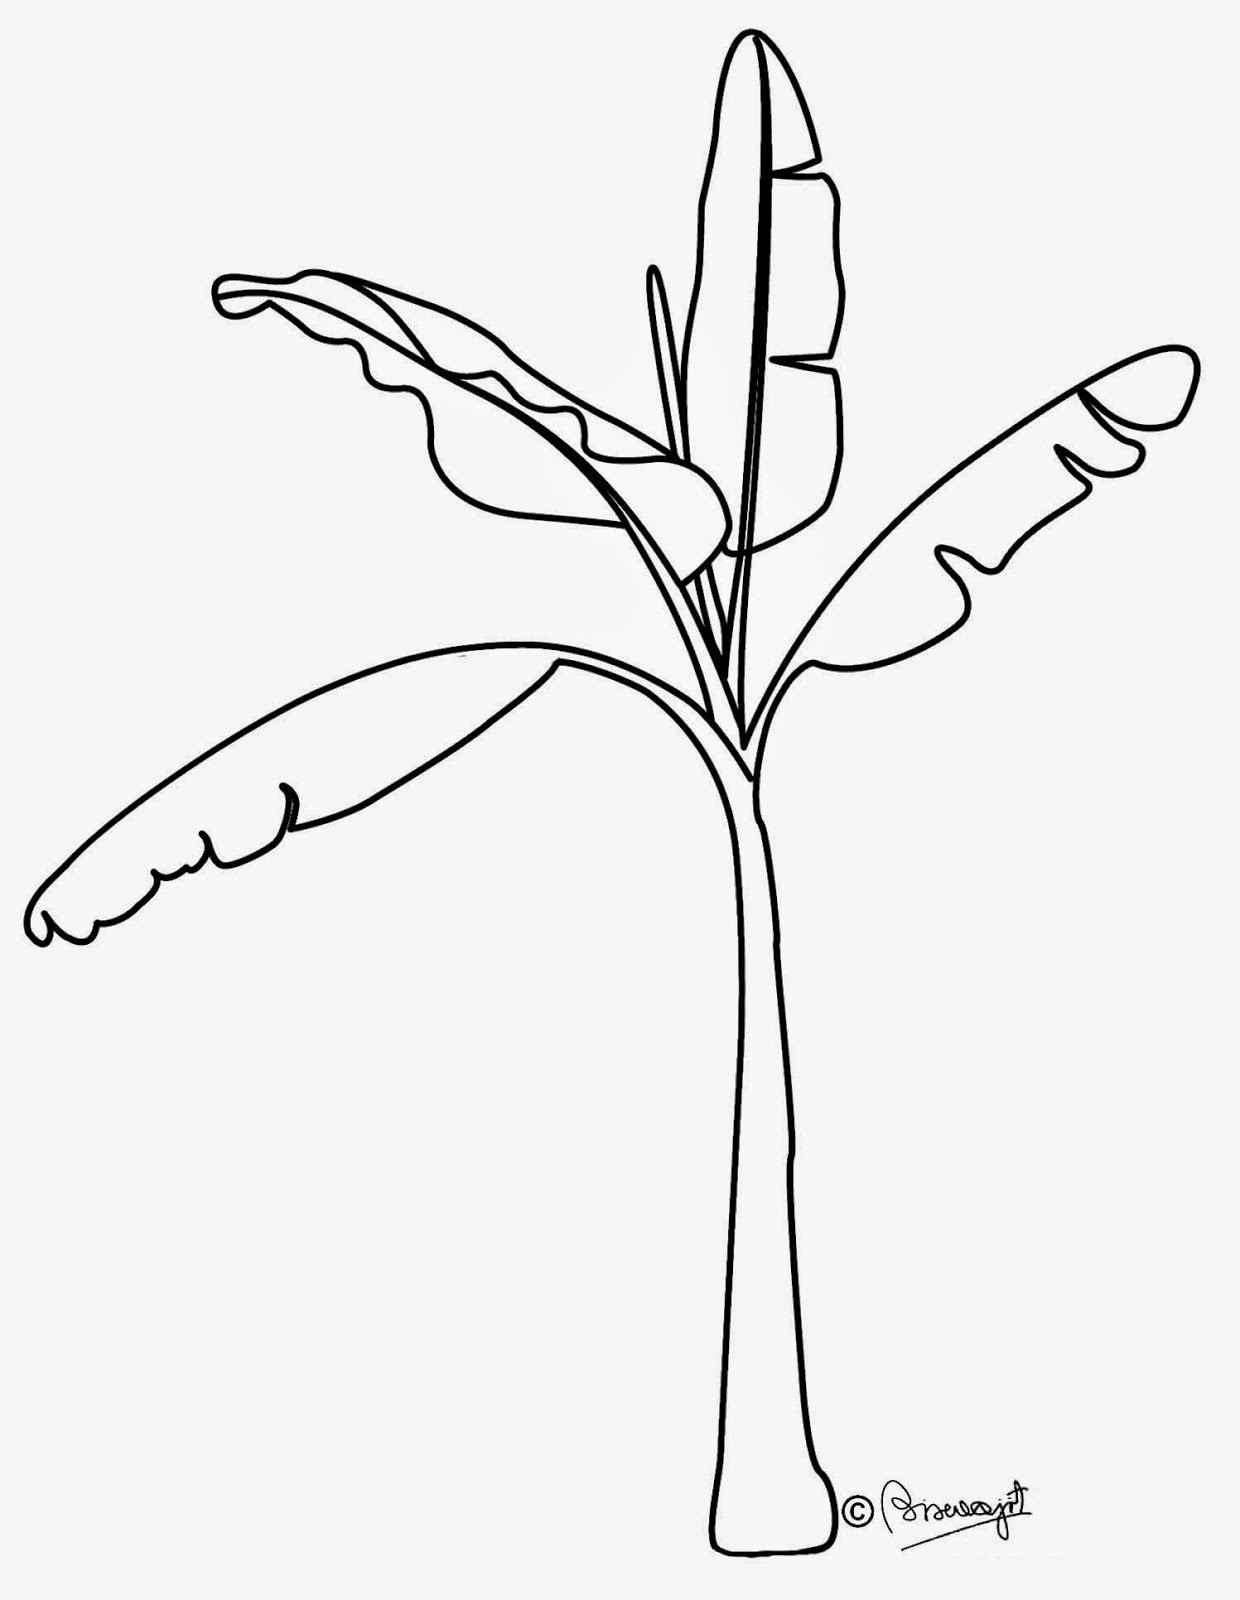 Banana tree clipart black and white 2 » Clipart Station.